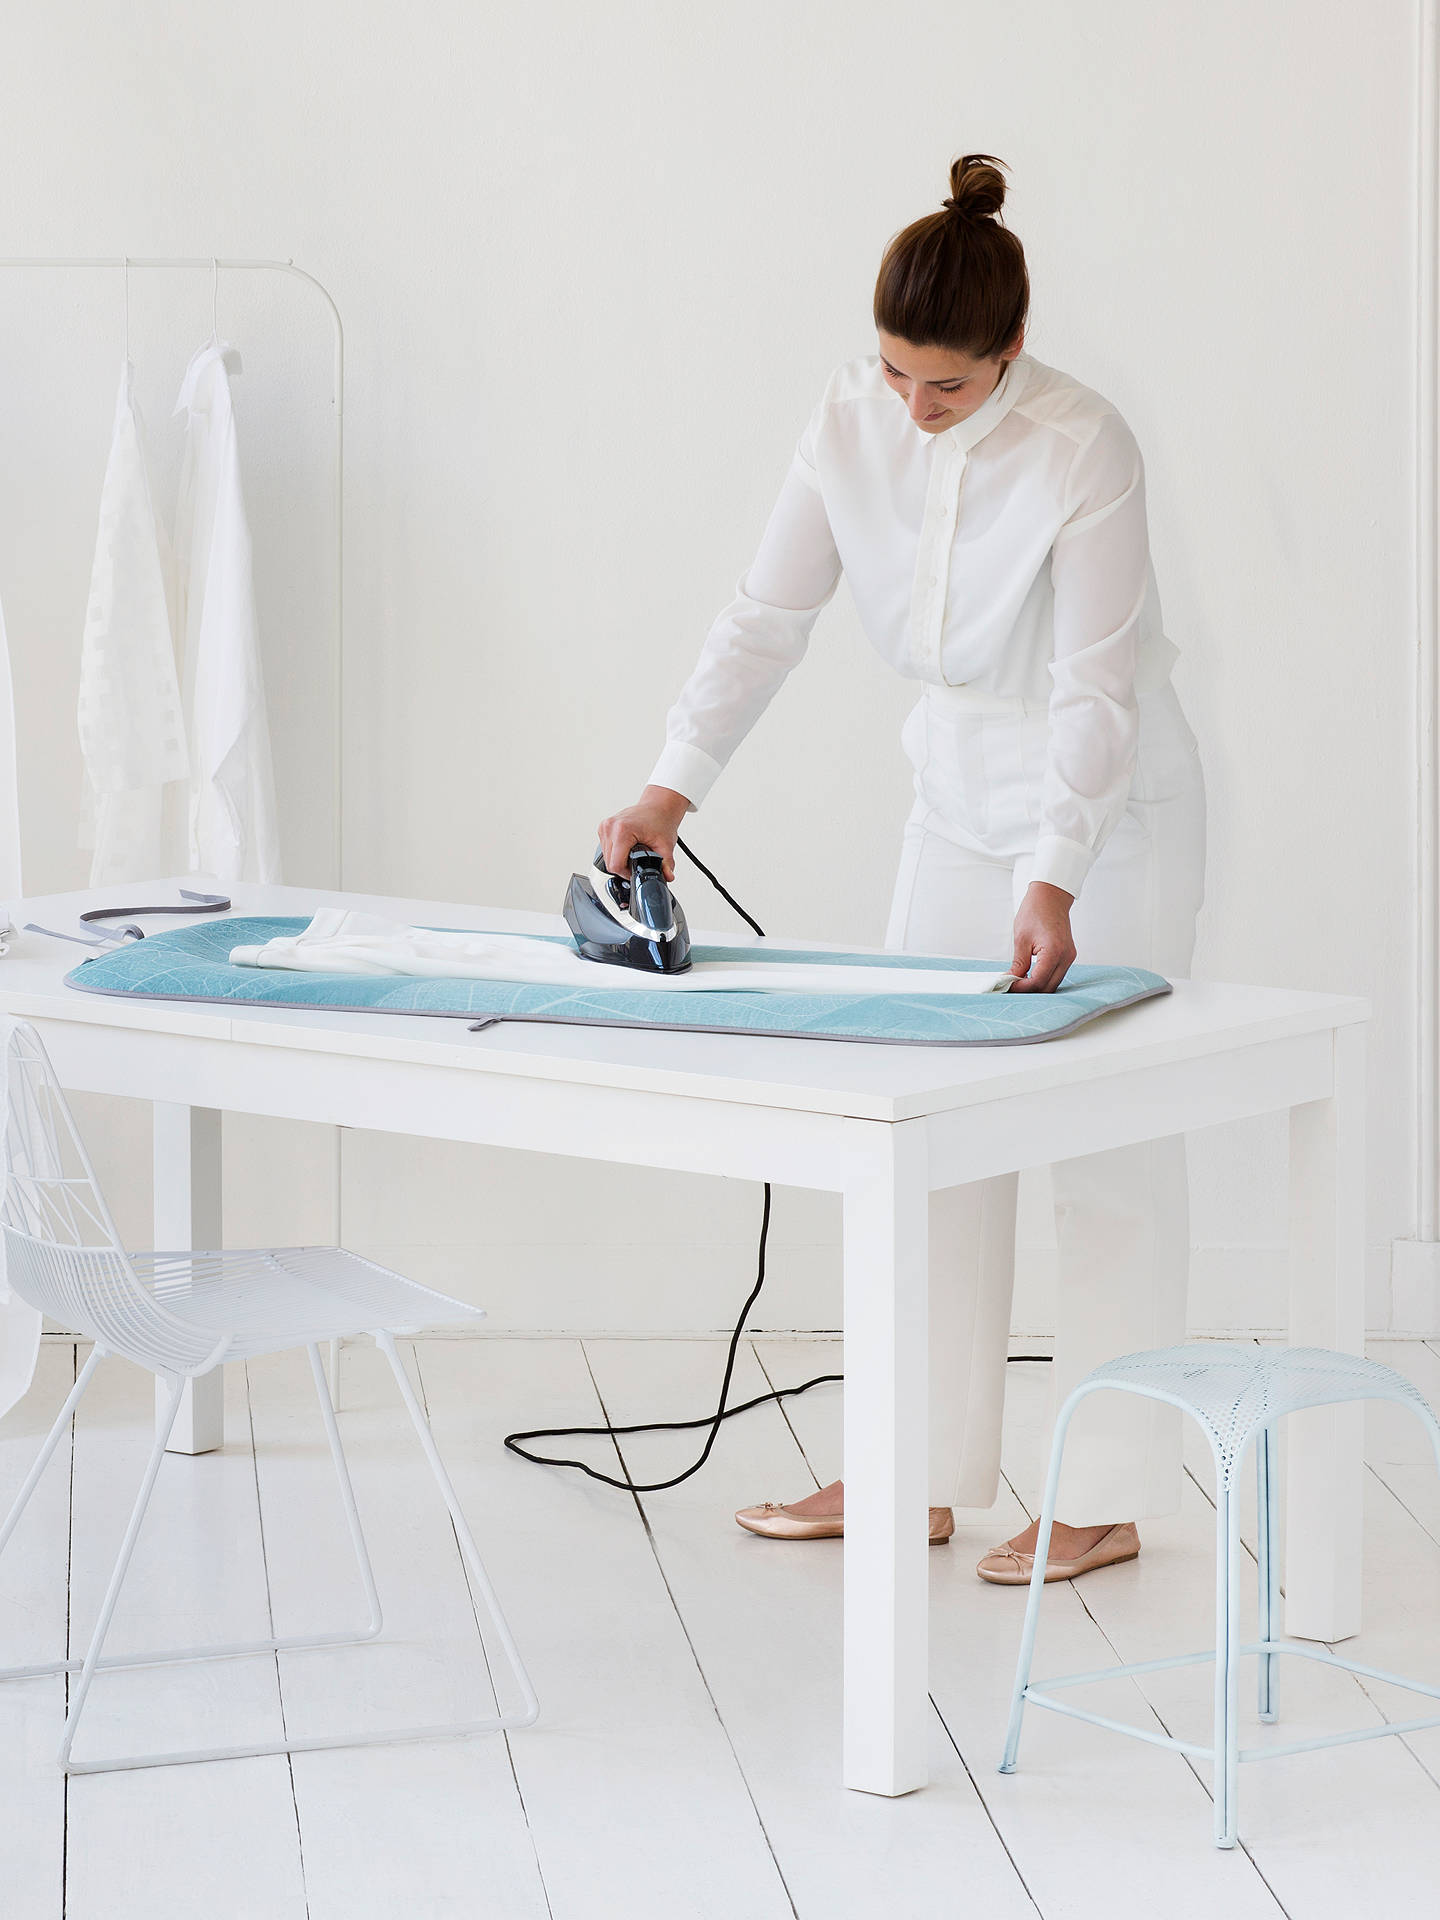 BuyBrabantia Ironing Blanket Online at johnlewis.com